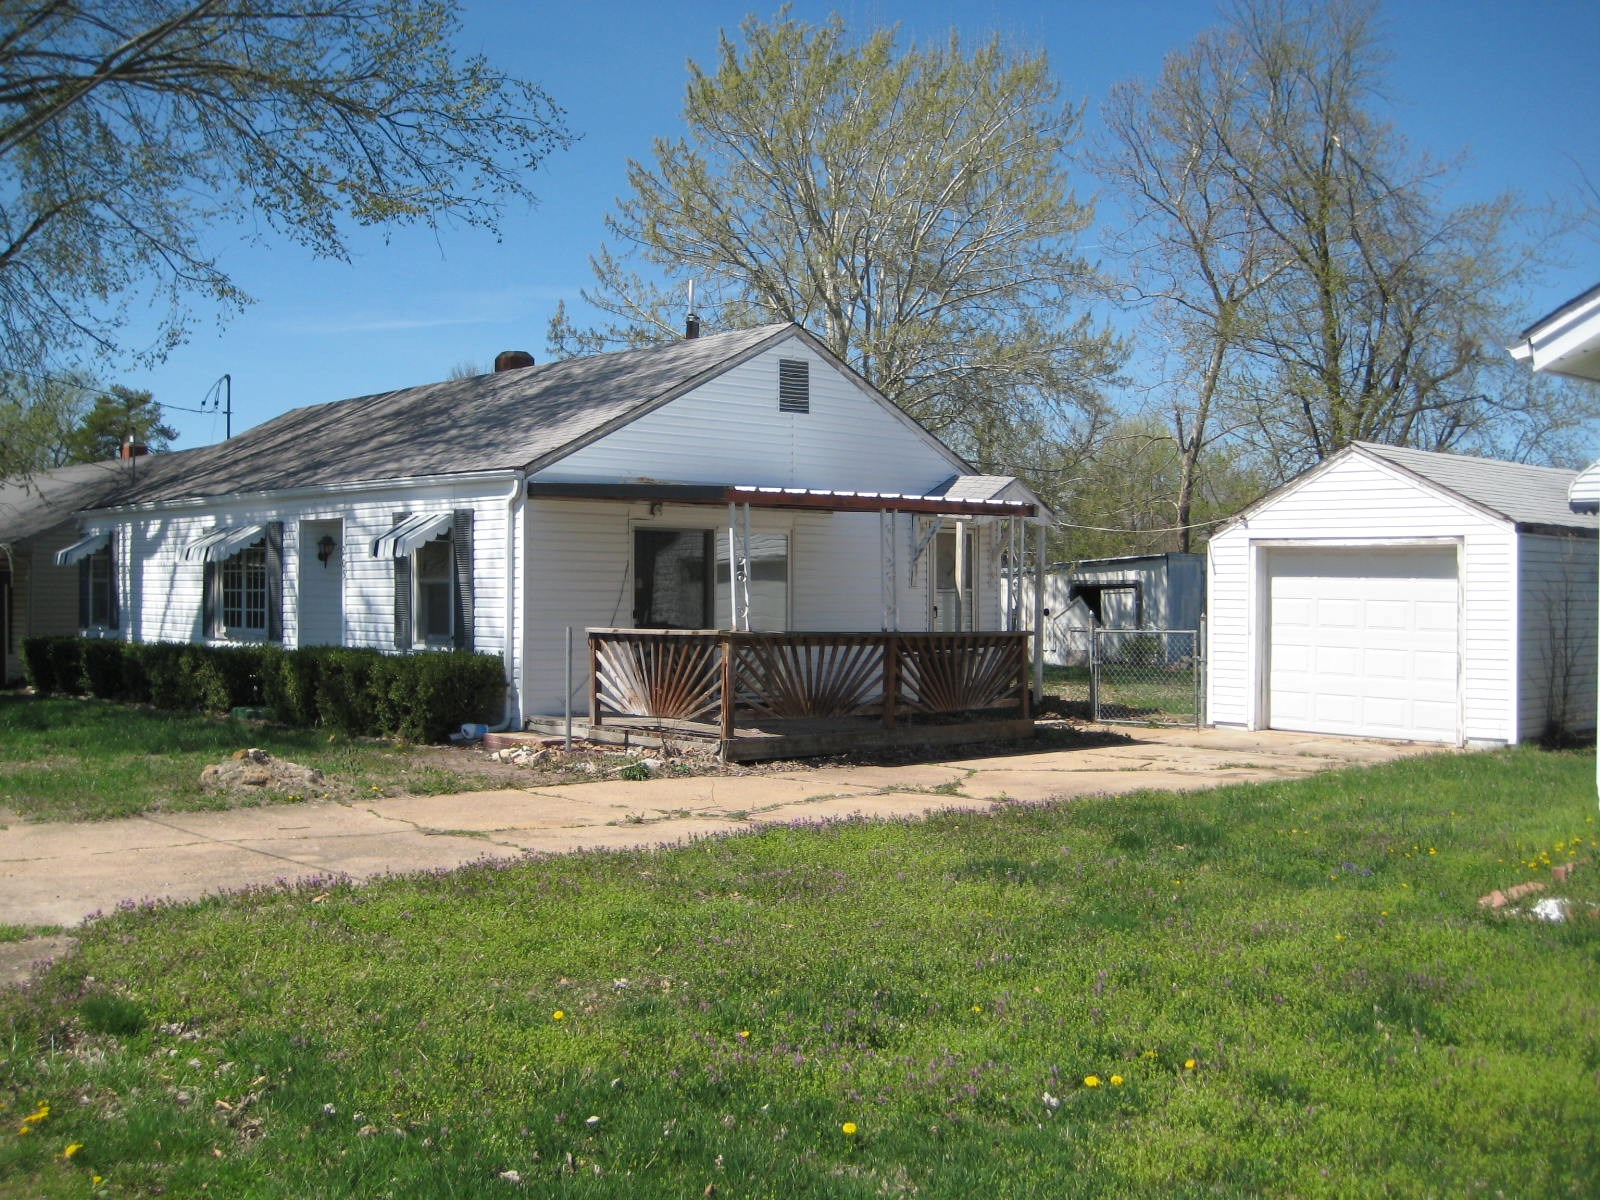 2 Bed 1 Bath Home in Town - Stover Missouri